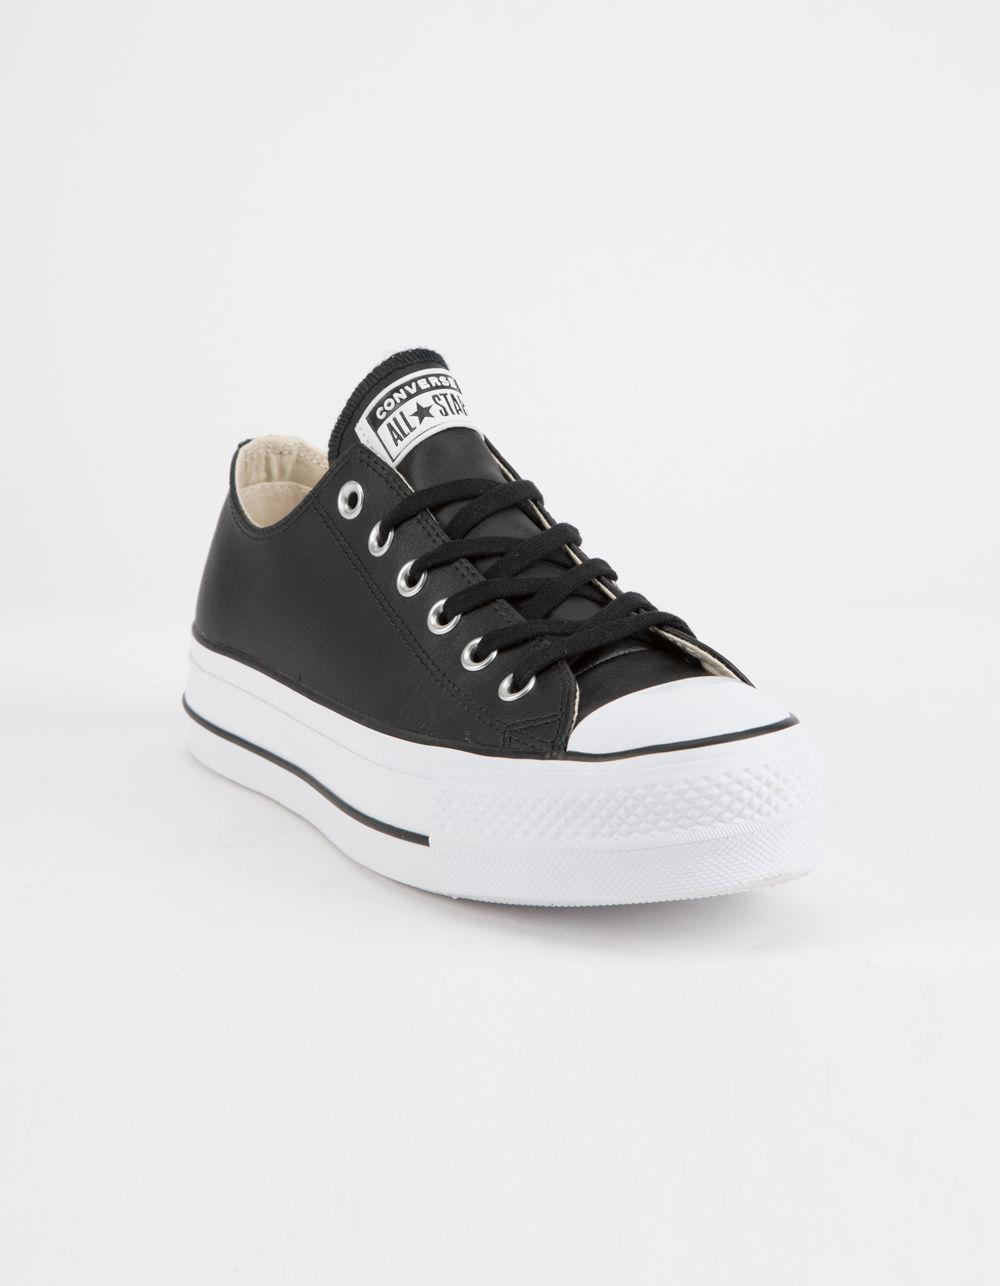 Lyst - Converse Chuck Taylor All Star Lift Faux Leather Womens Low Top Shoes  in Black 05ed75374